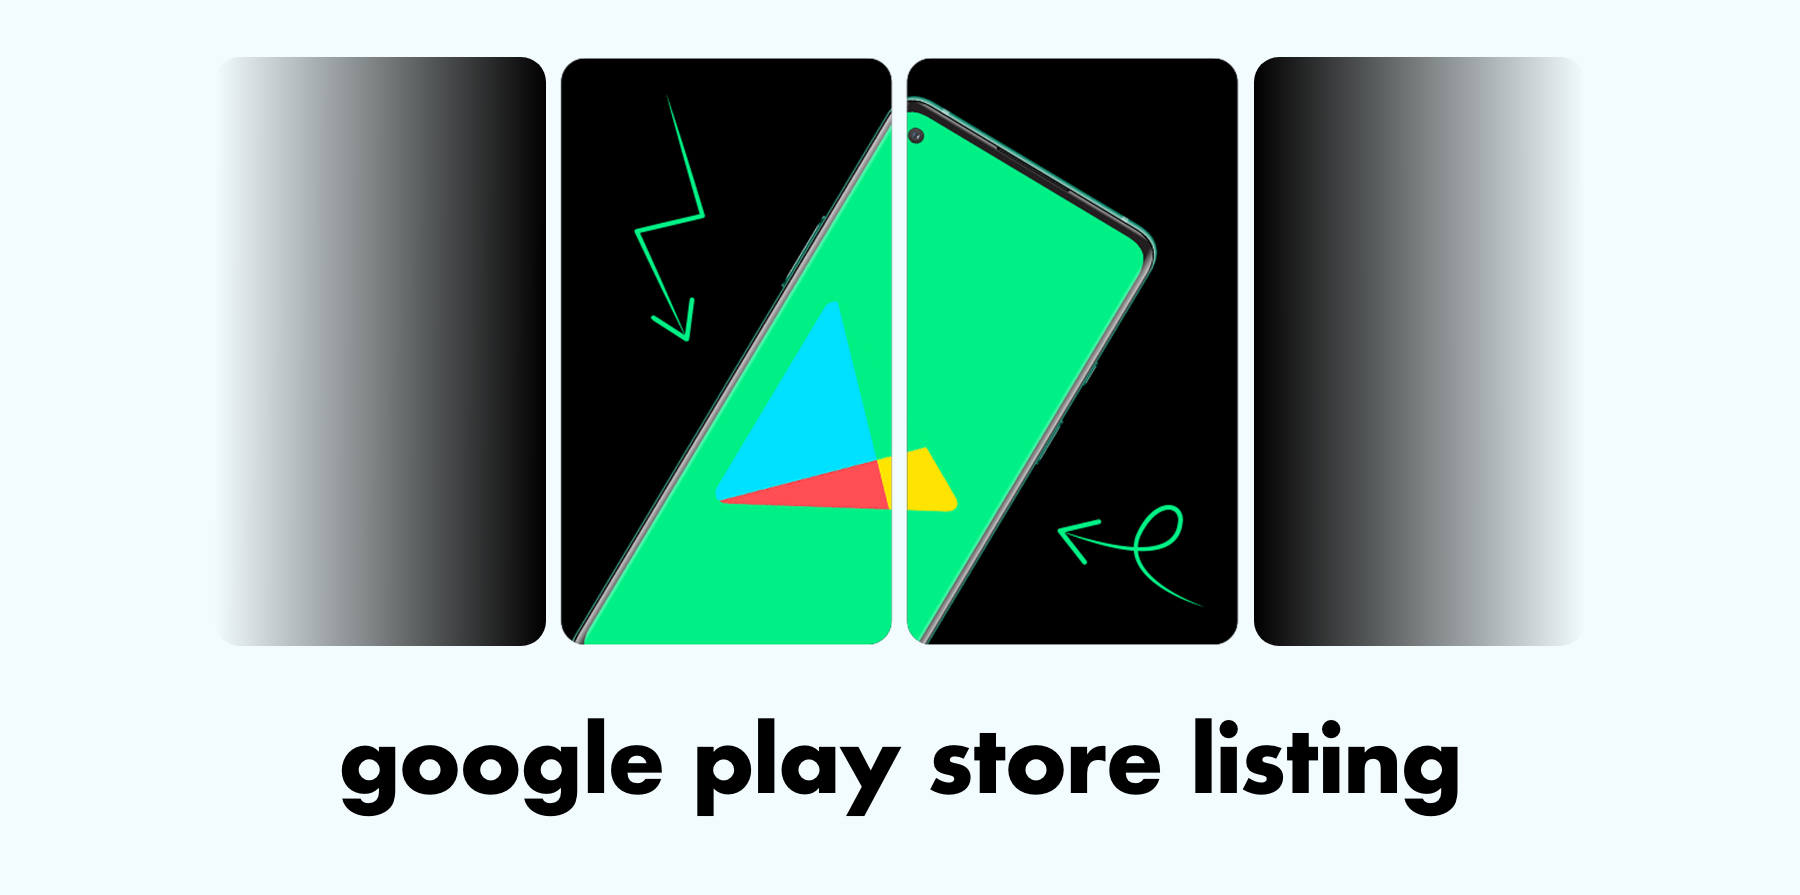 Google Play Store Listing Image